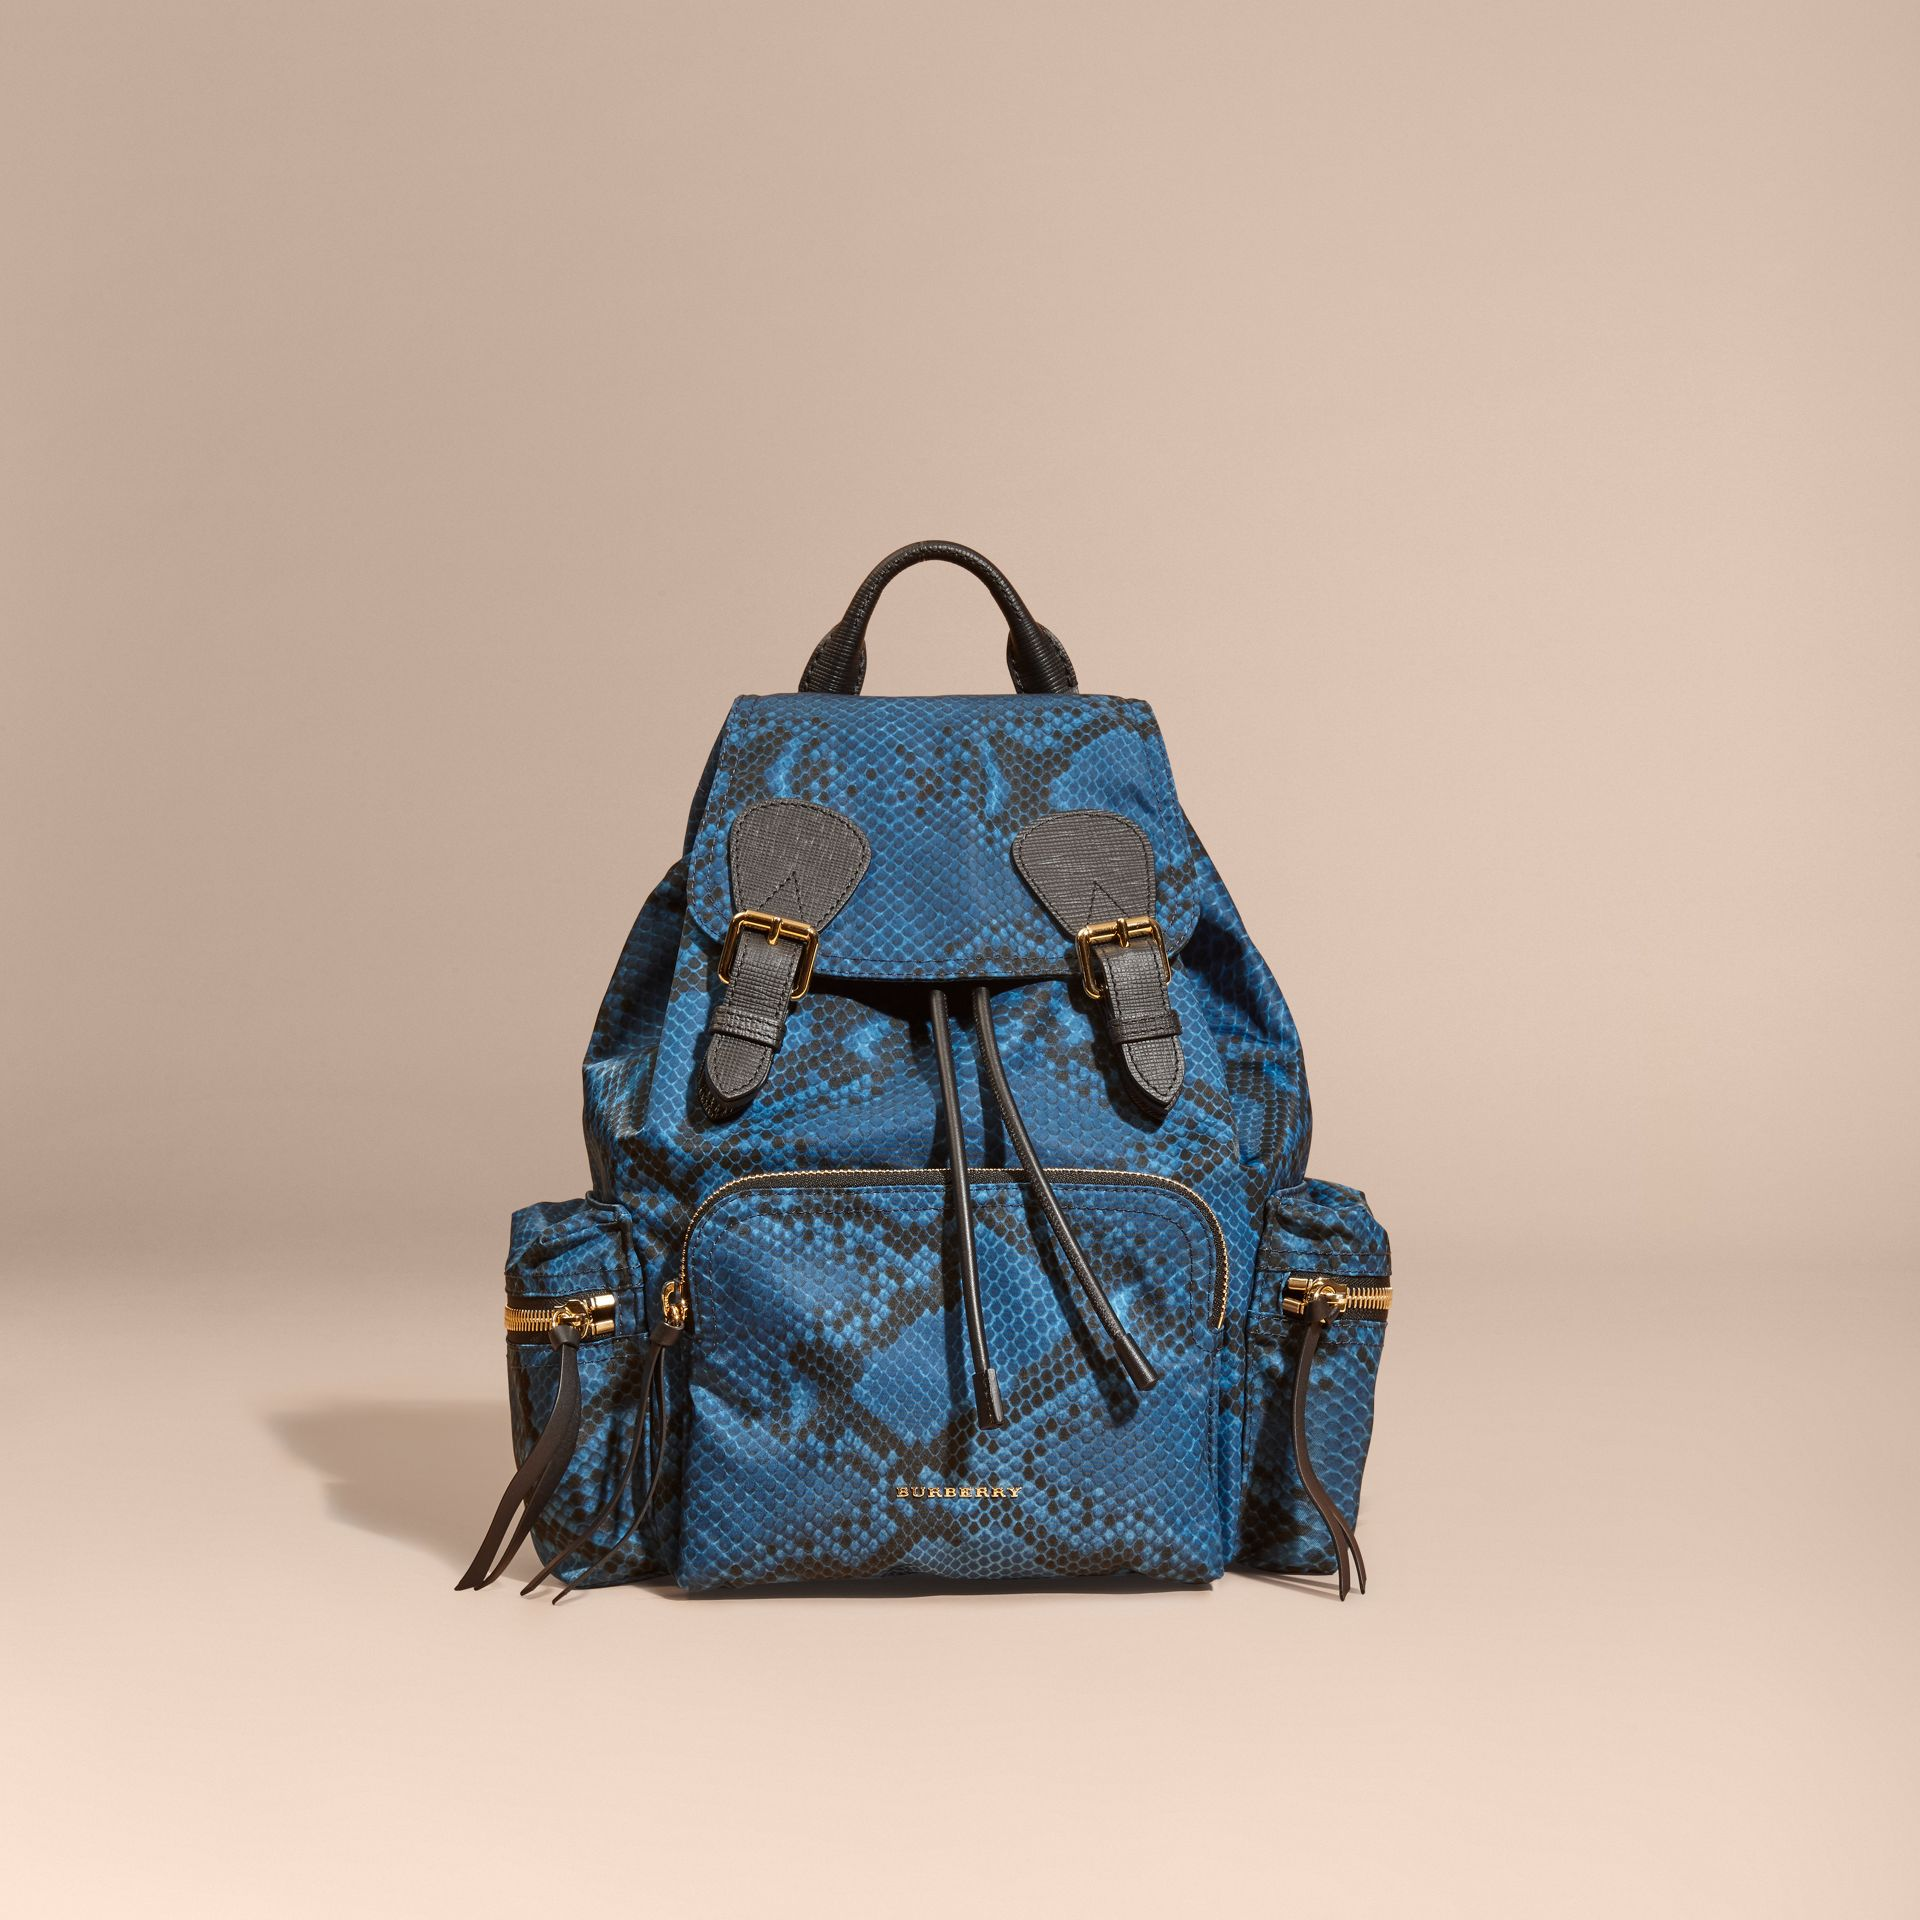 Bleu Sac The Rucksack medium en nylon à imprimé python et cuir Bleu - photo de la galerie 8